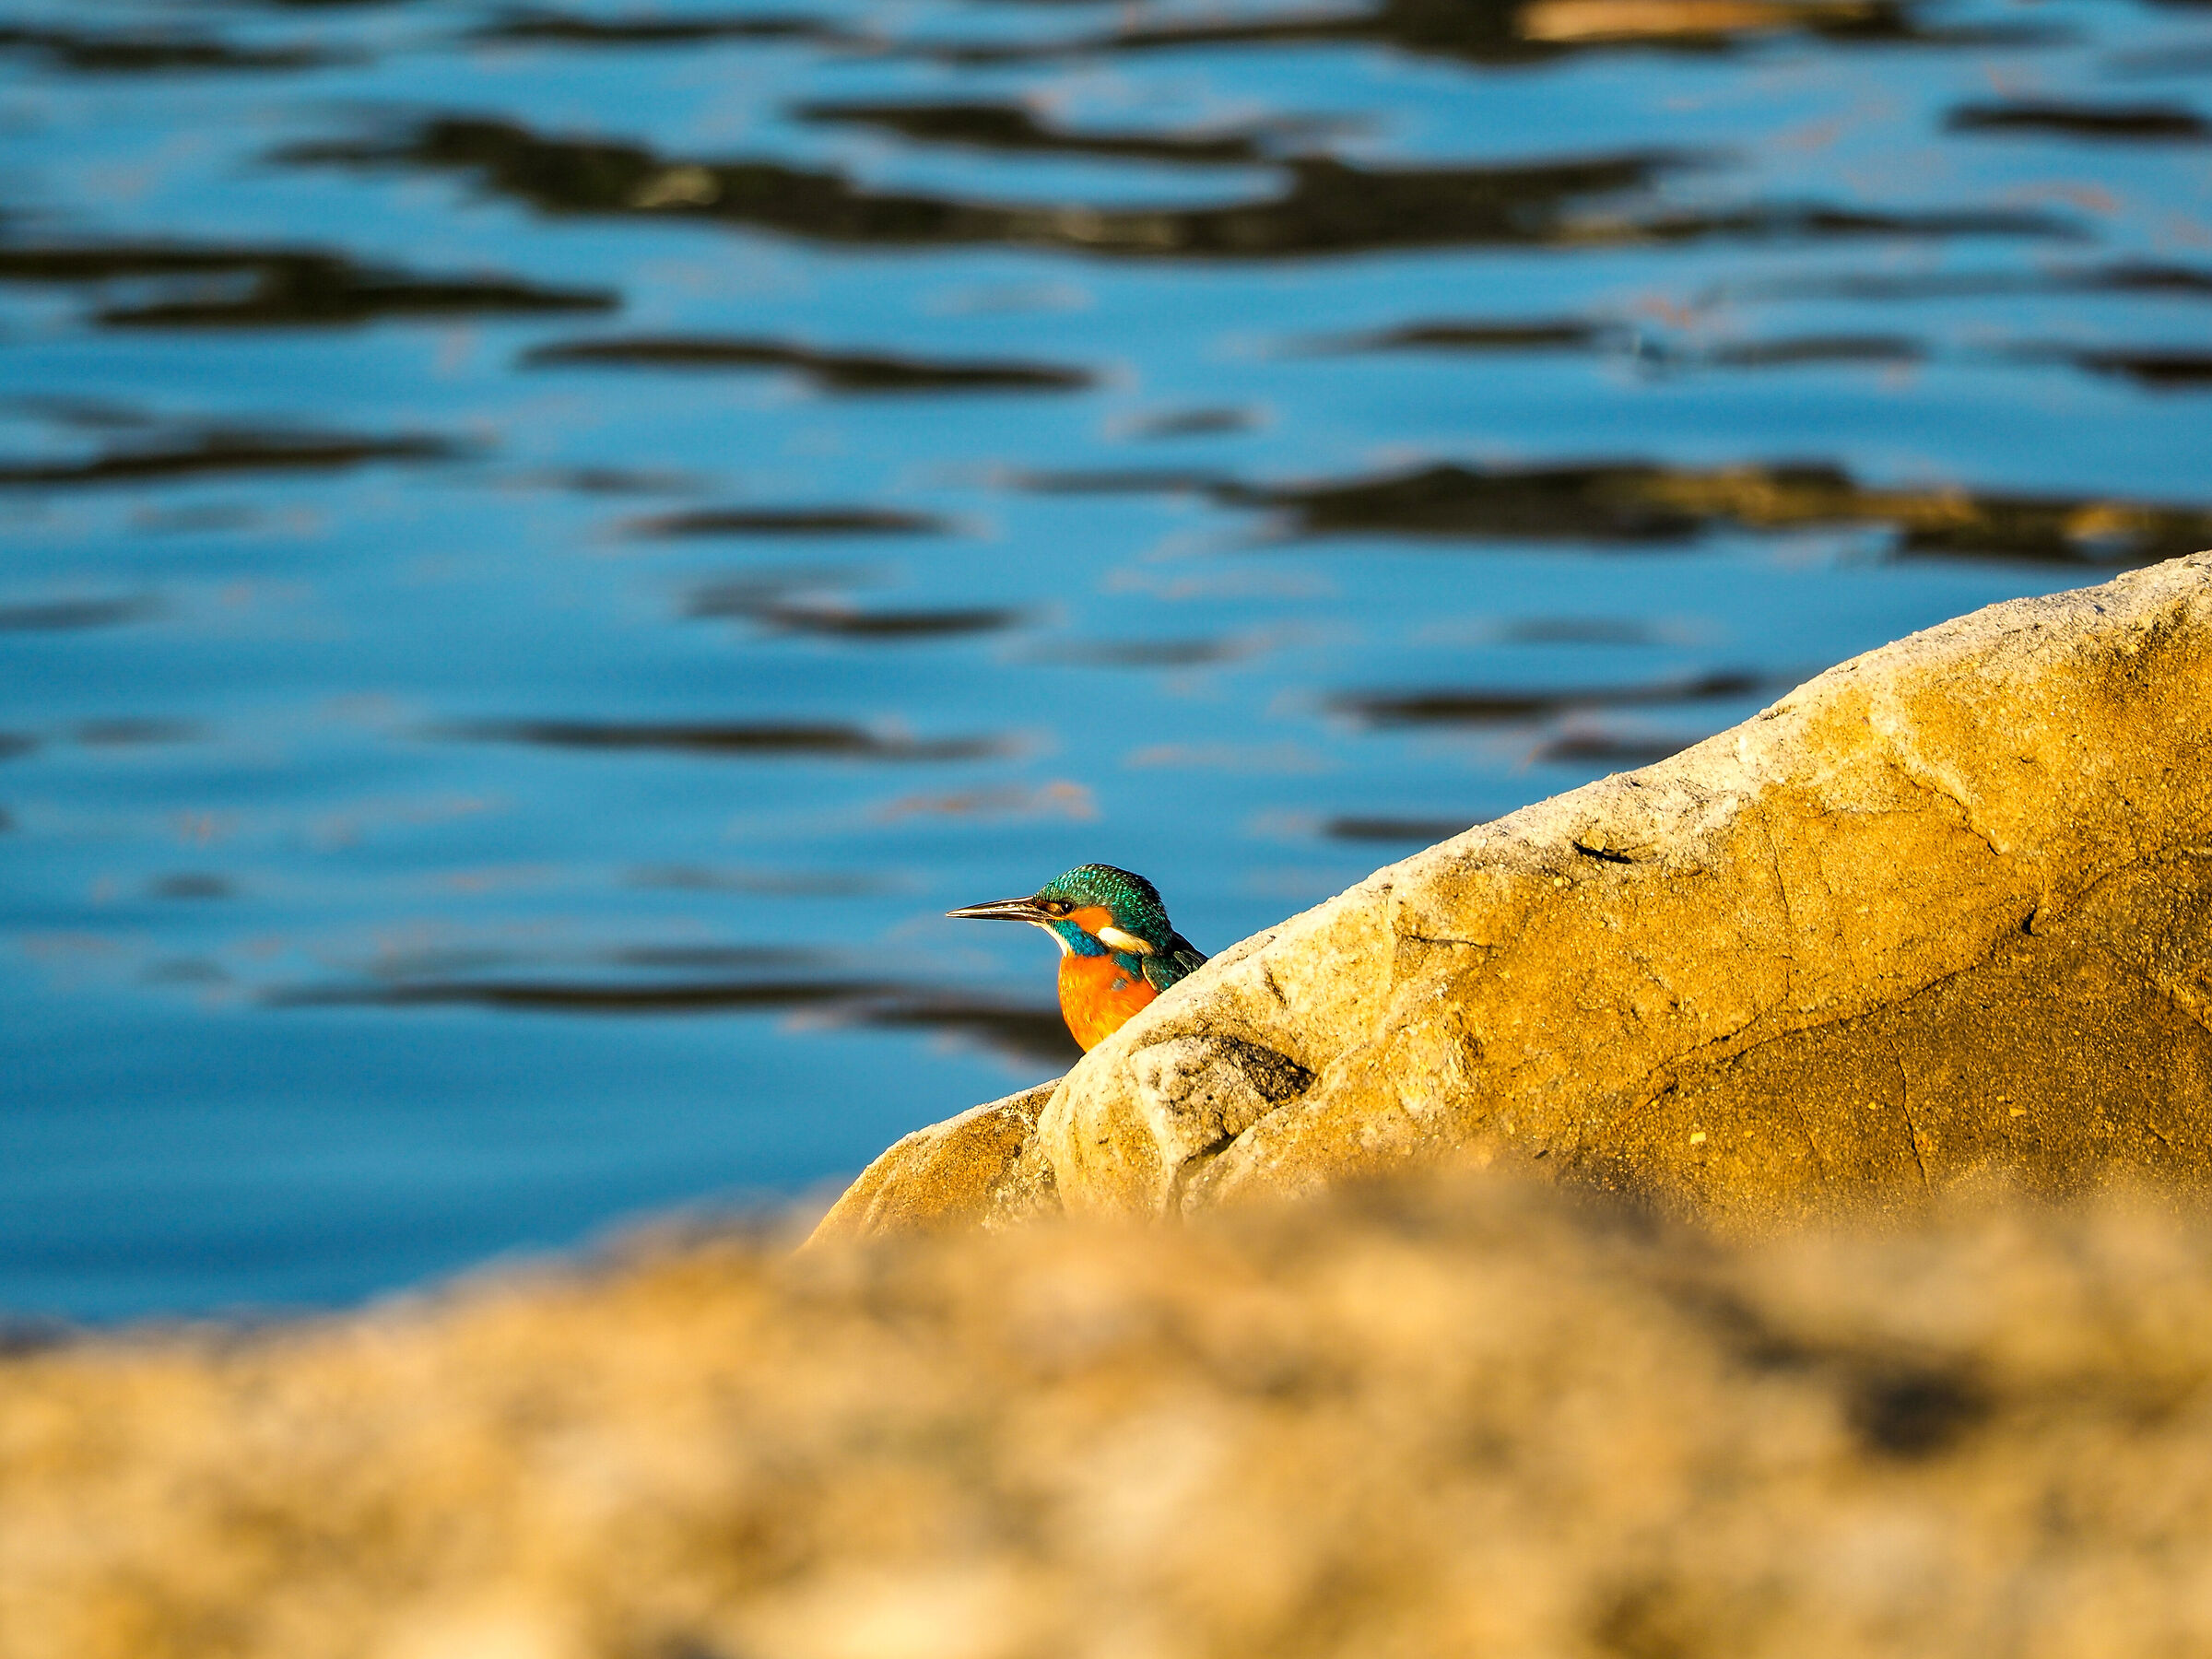 My first kingfisher....